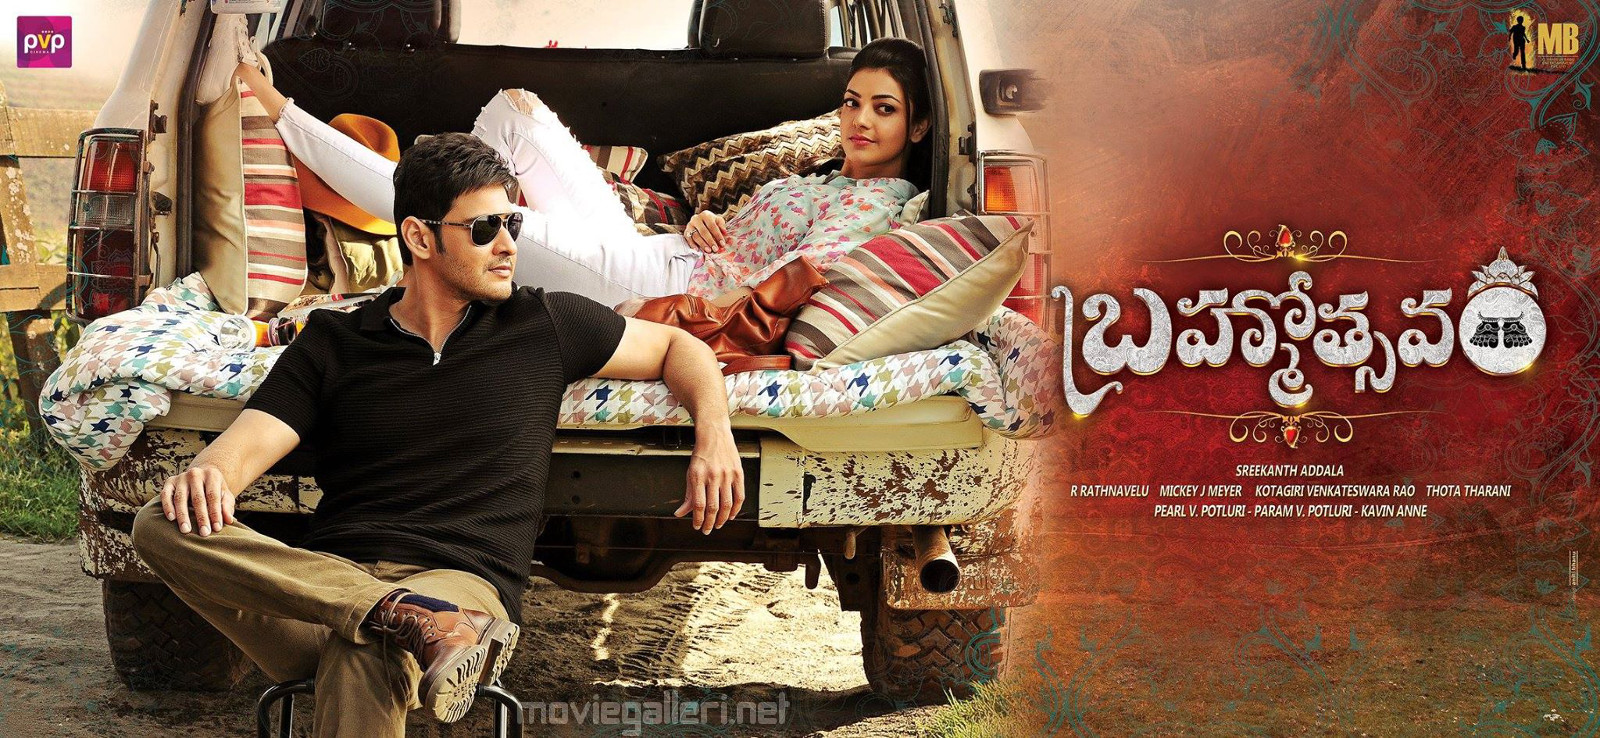 Mahesh Babu Kajal Agarwal Brahmotsavam Movie Wallpaper